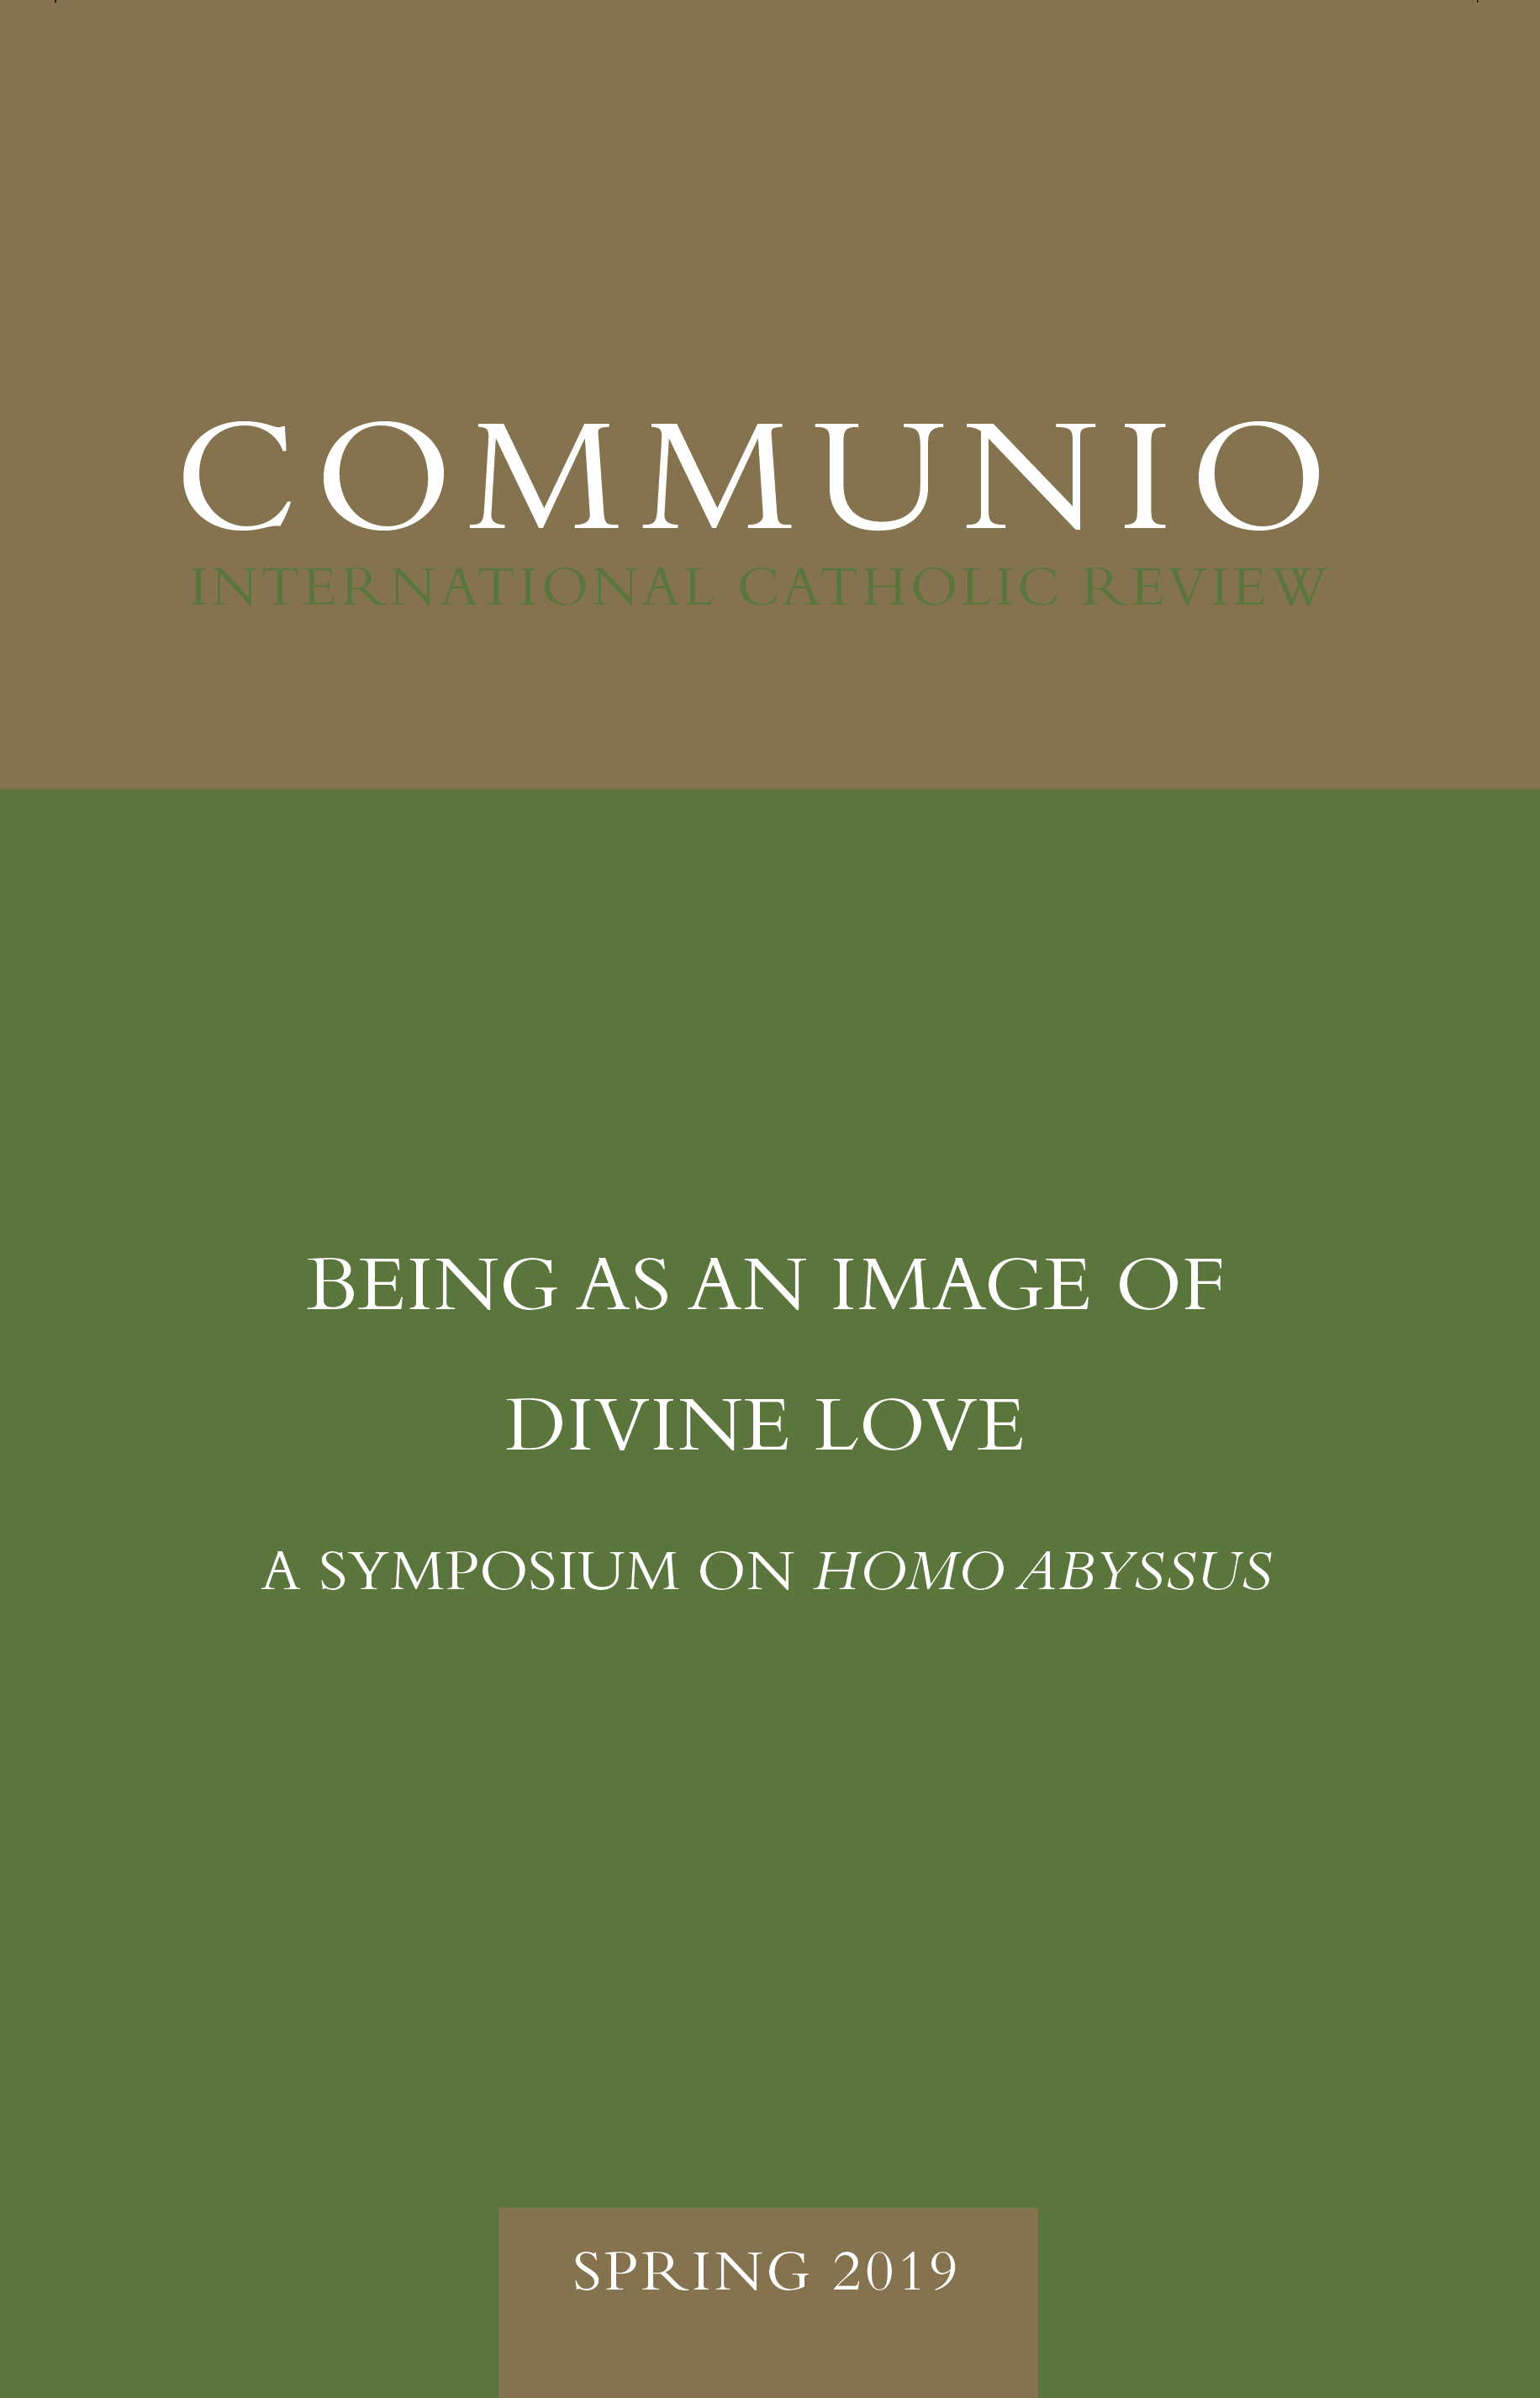 Communio - Spring 2019 - Being as an Image of Divine Love: A Symposium on Homo Abyssus